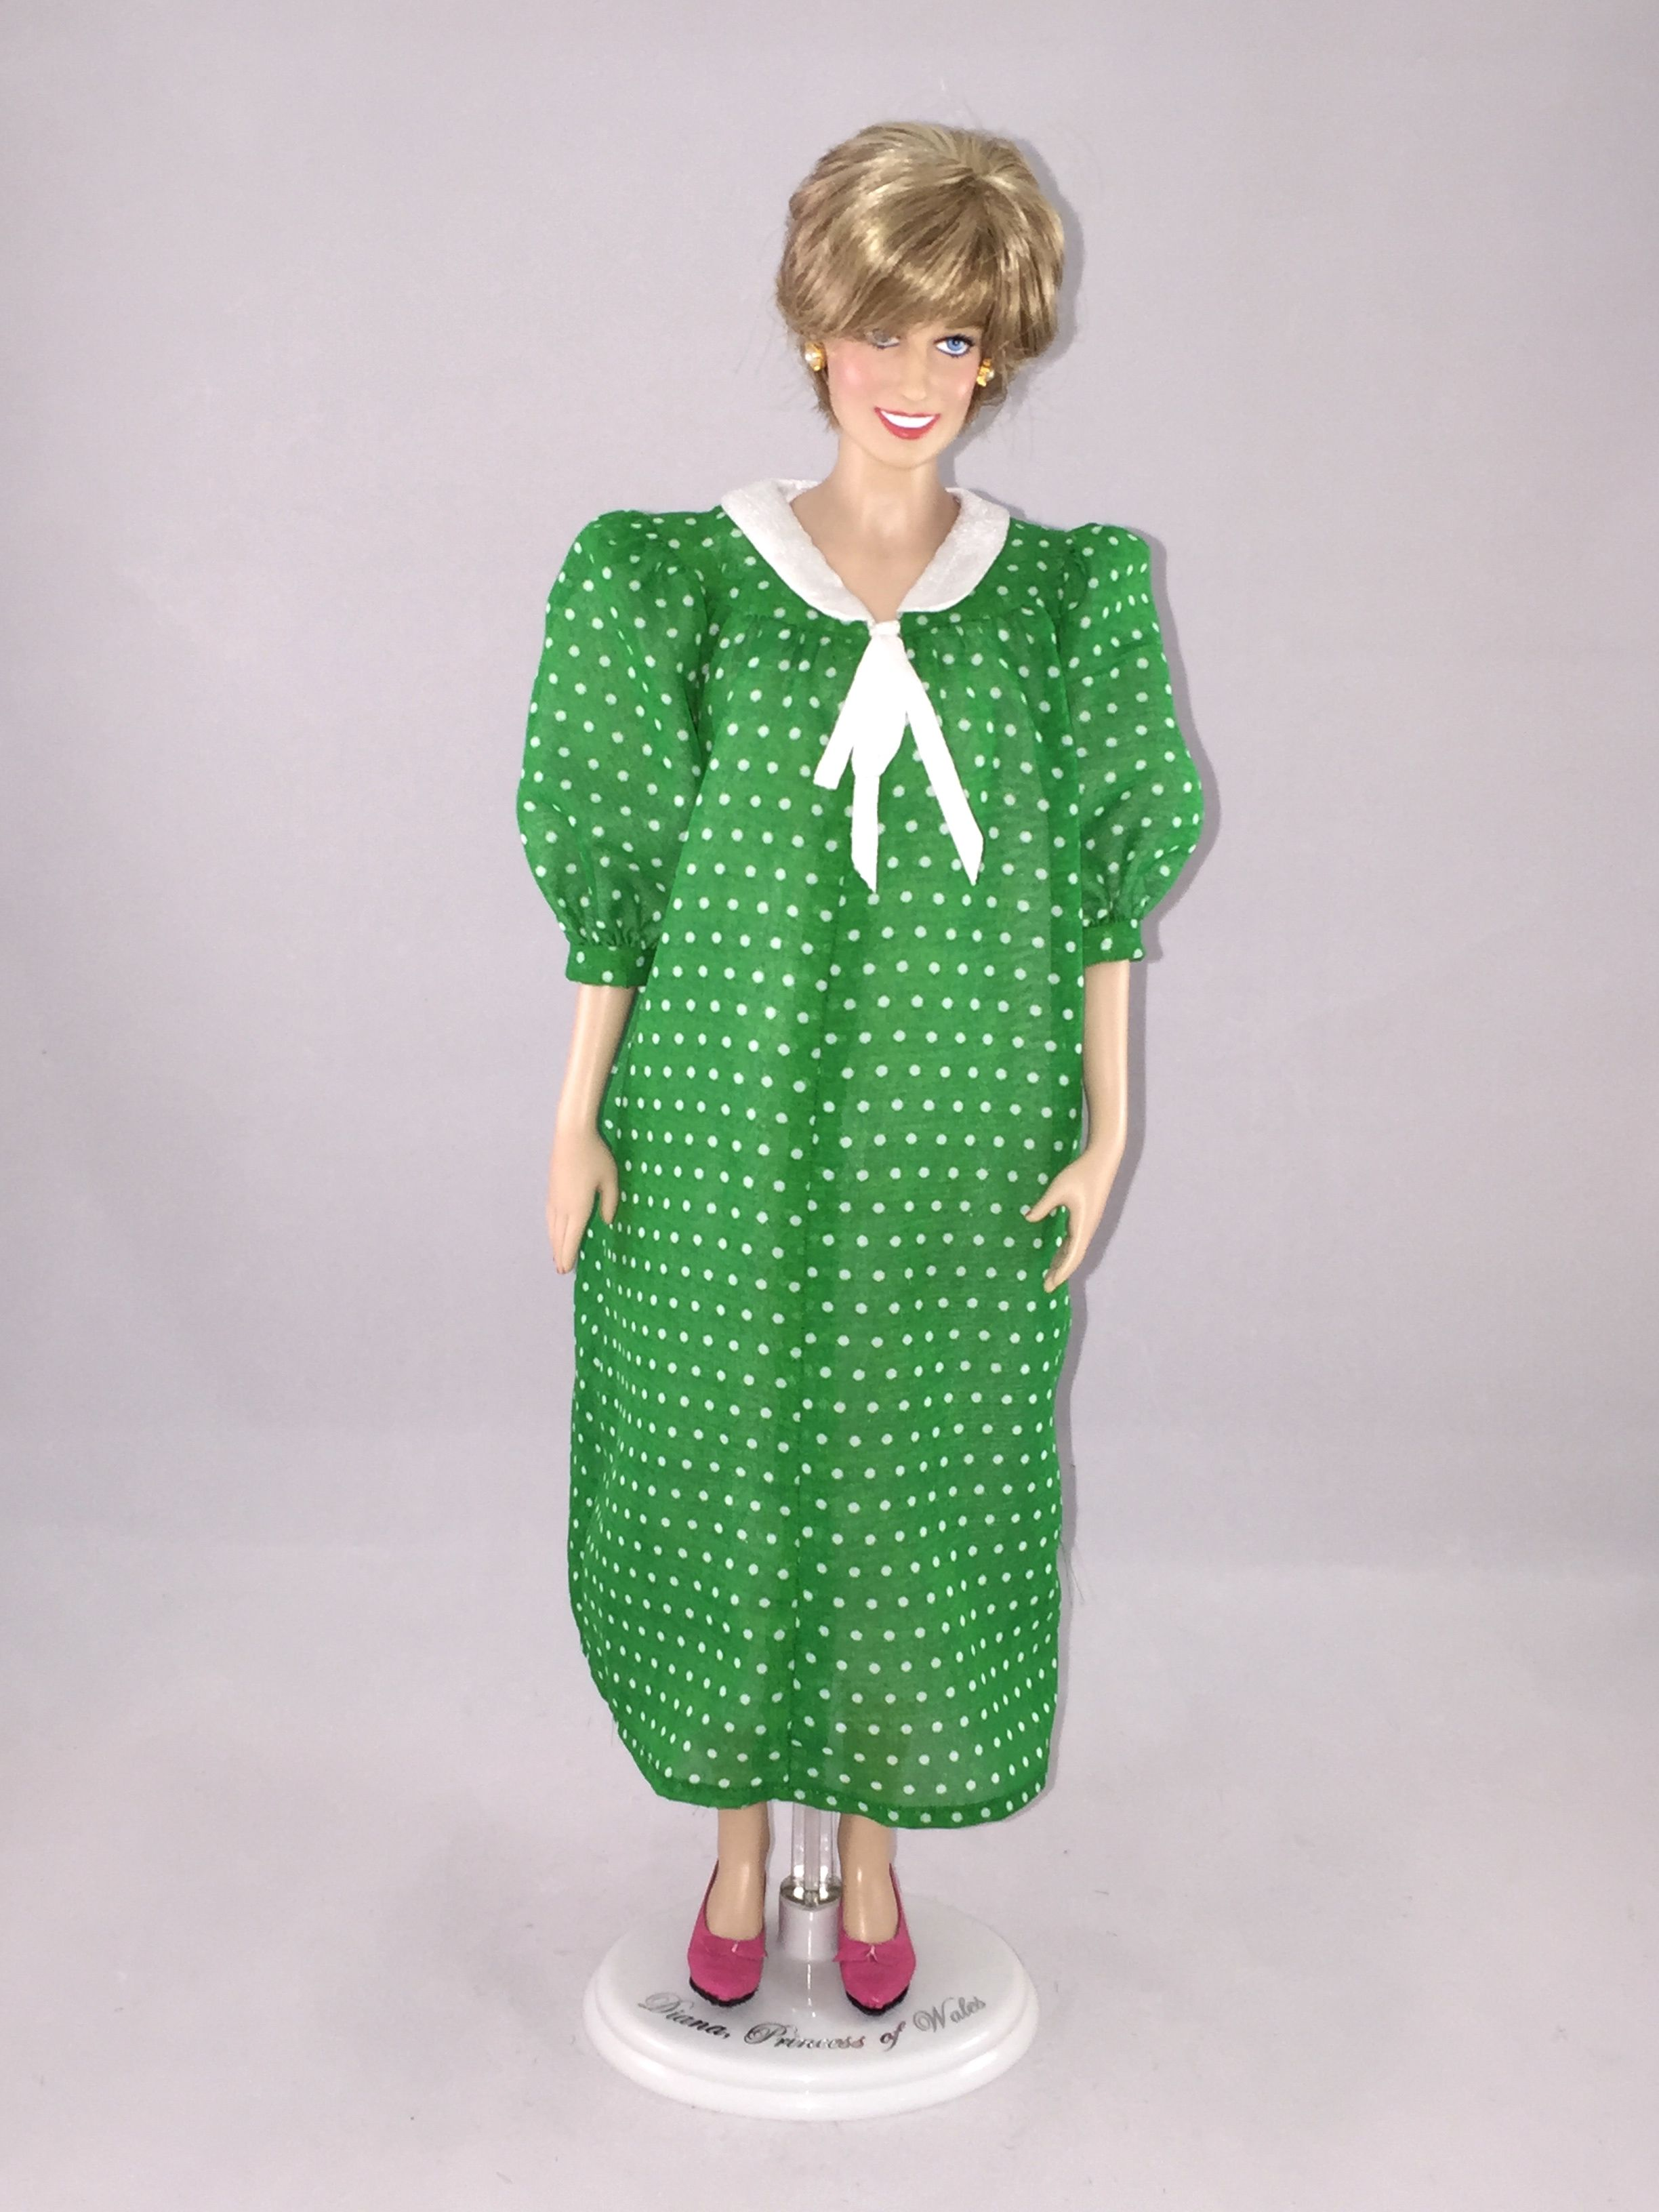 This franklin mint diana doll is wearing a custom replica of the this franklin mint diana doll is wearing a custom replica of the green polka dot maternity dress that princess diana wore as she emerged from the hospital ombrellifo Image collections